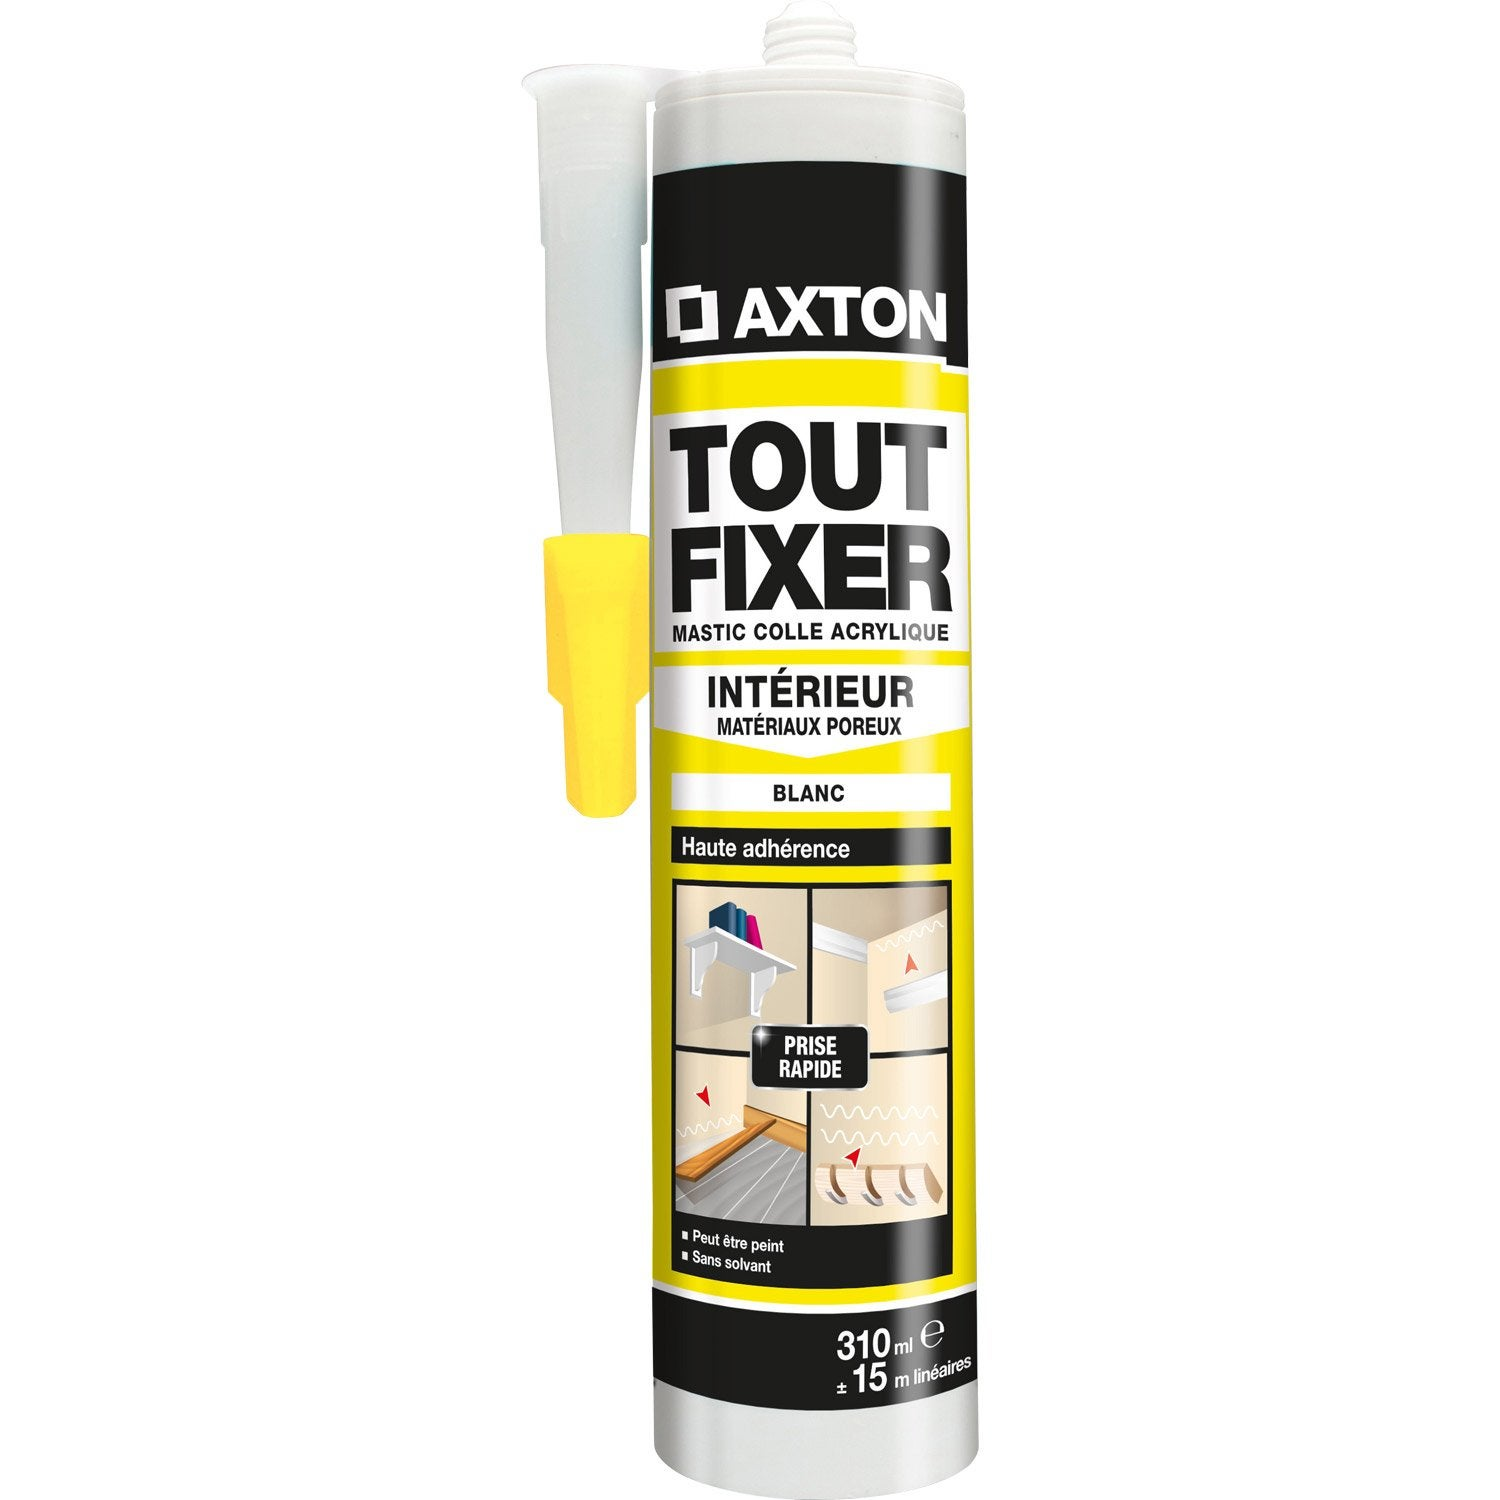 Colle mastic tout fixer axton 310 ml leroy merlin for Peut on coller du carrelage sur du bois